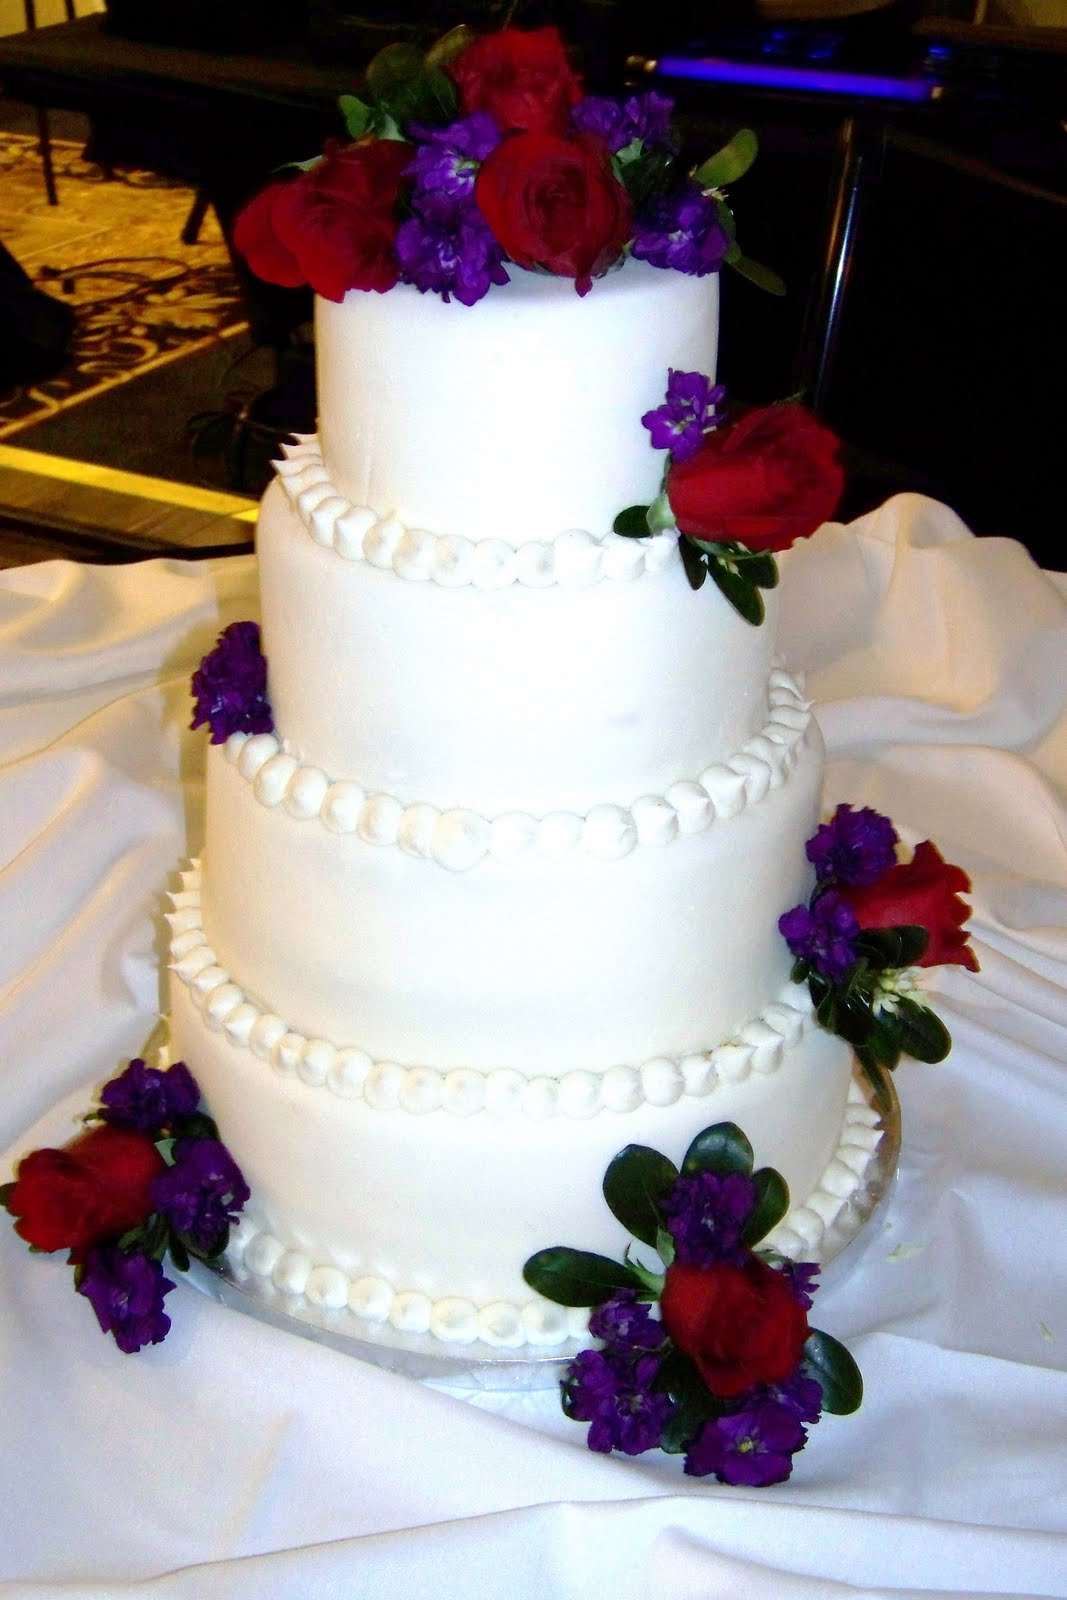 Sweet Cakes and Bakes: WEDDING CAKE